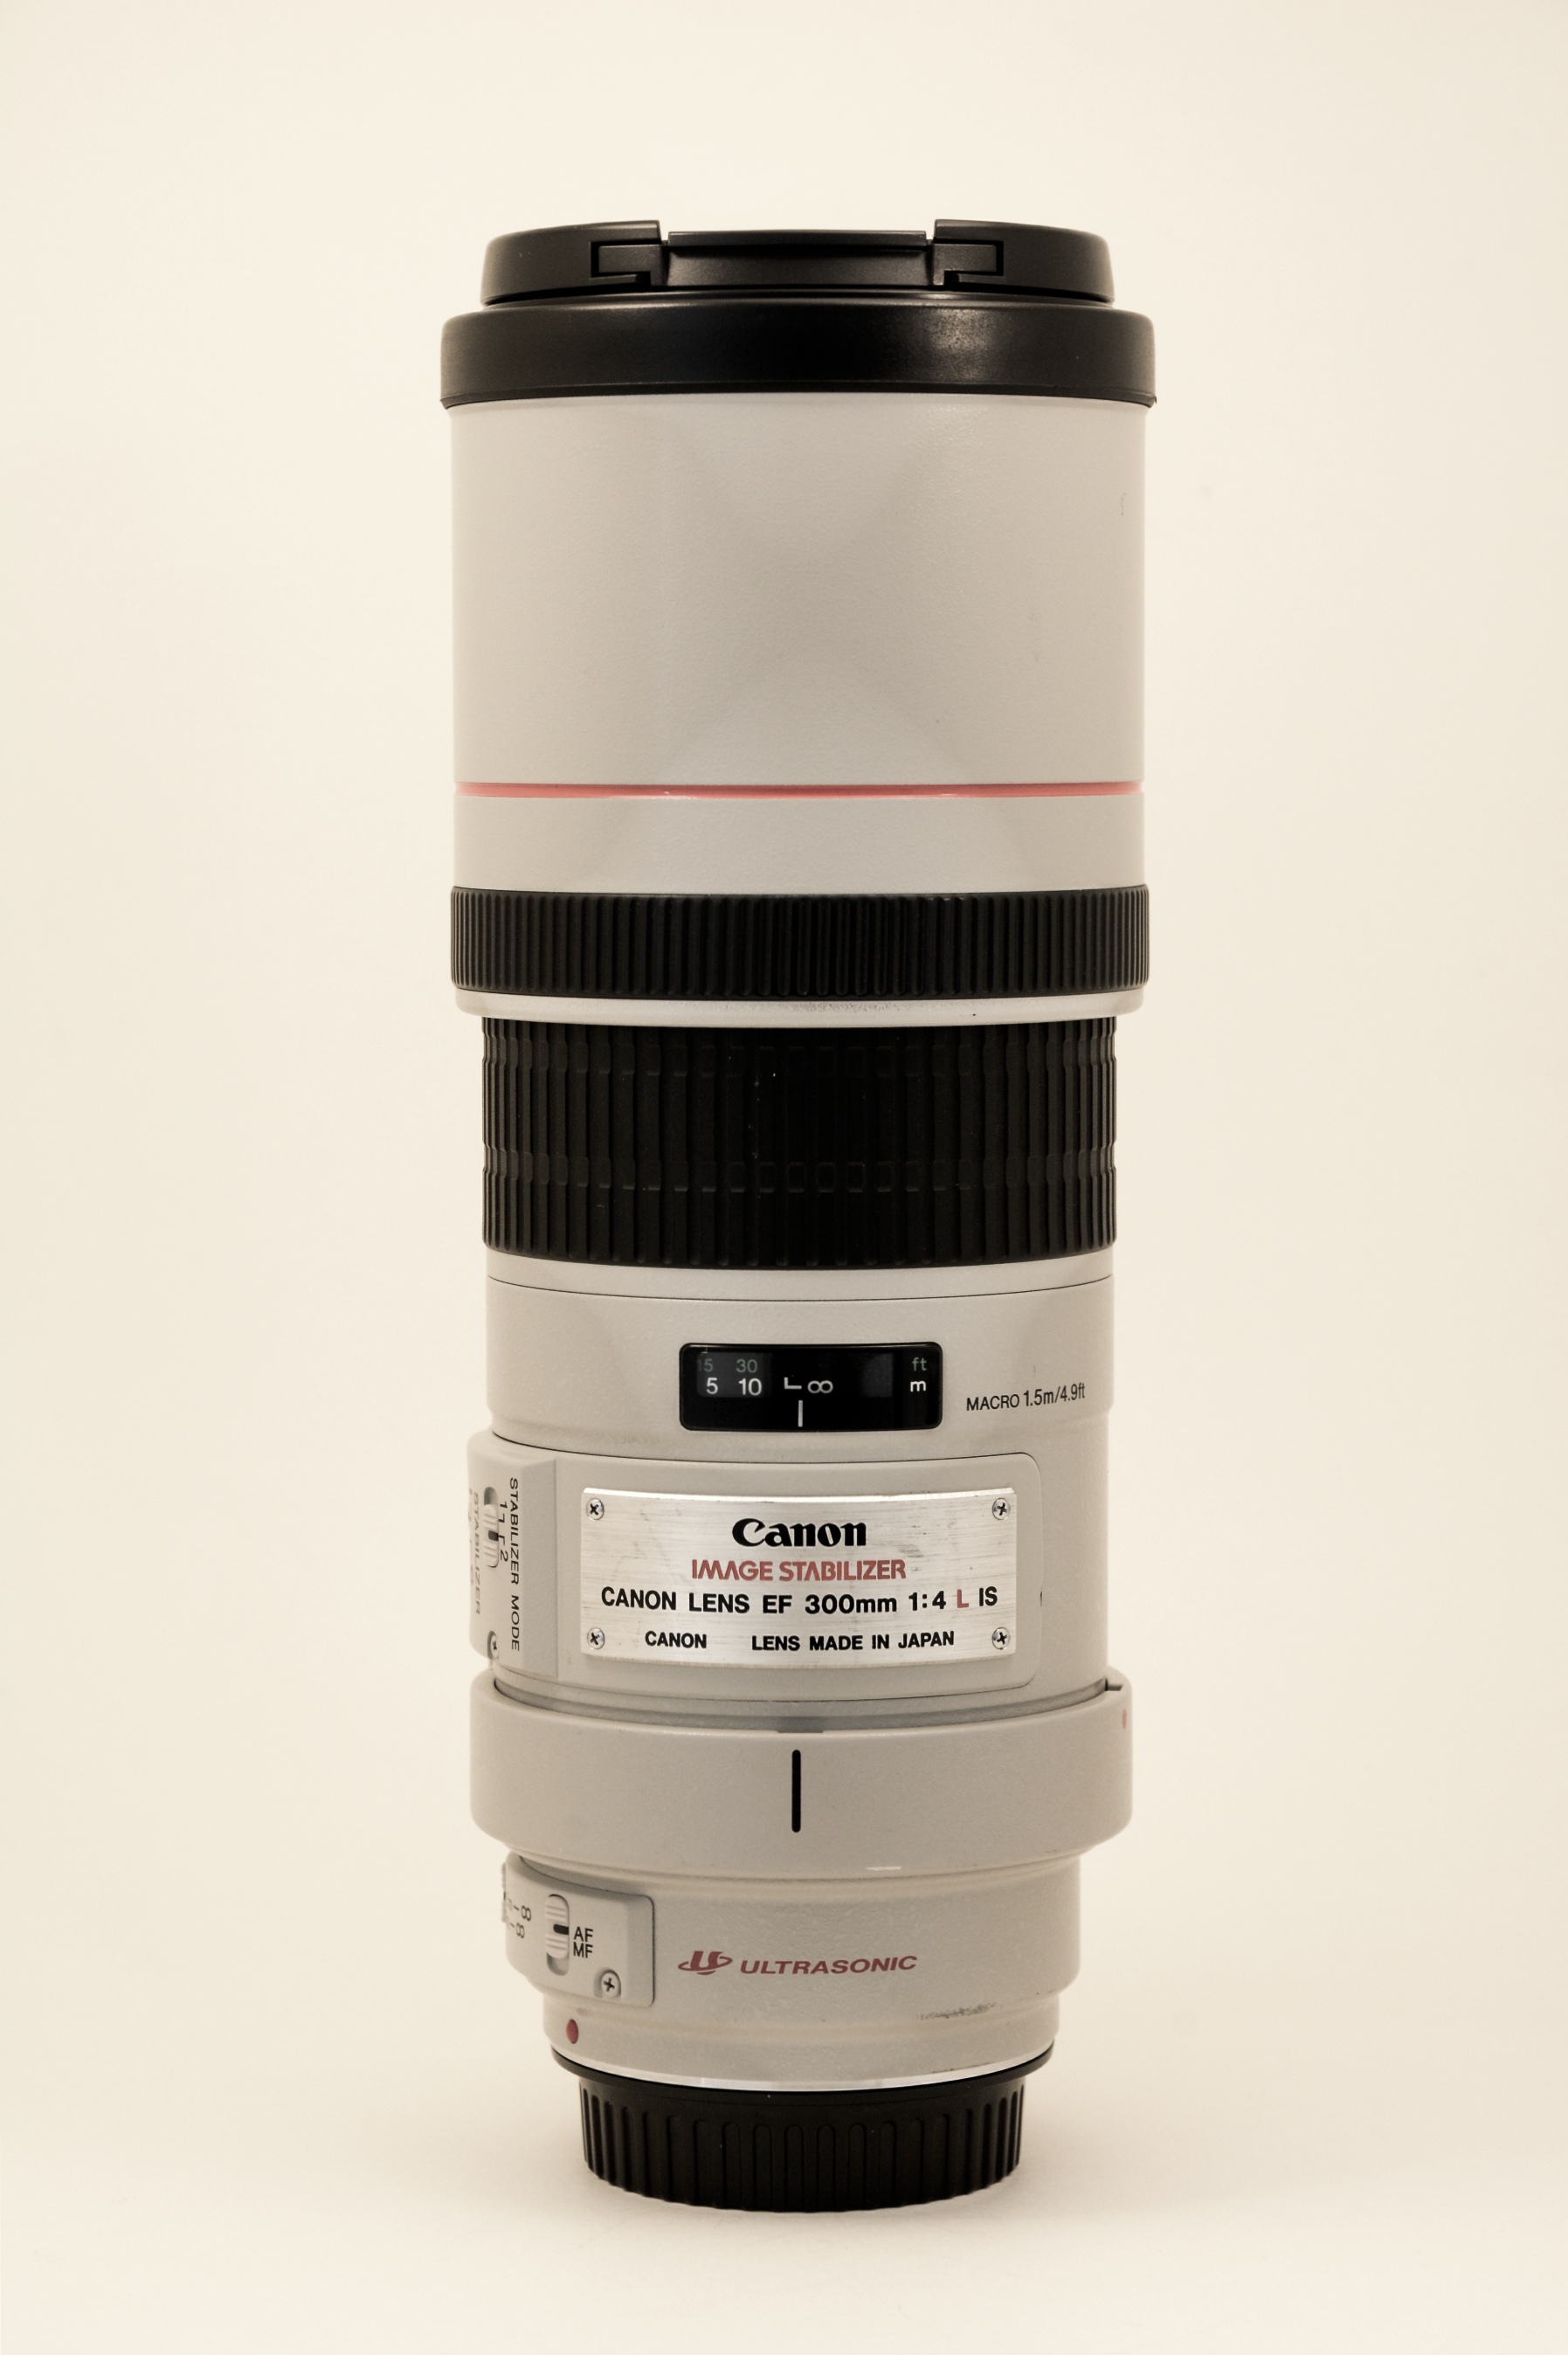 CANON EF 300 f:4 L IS